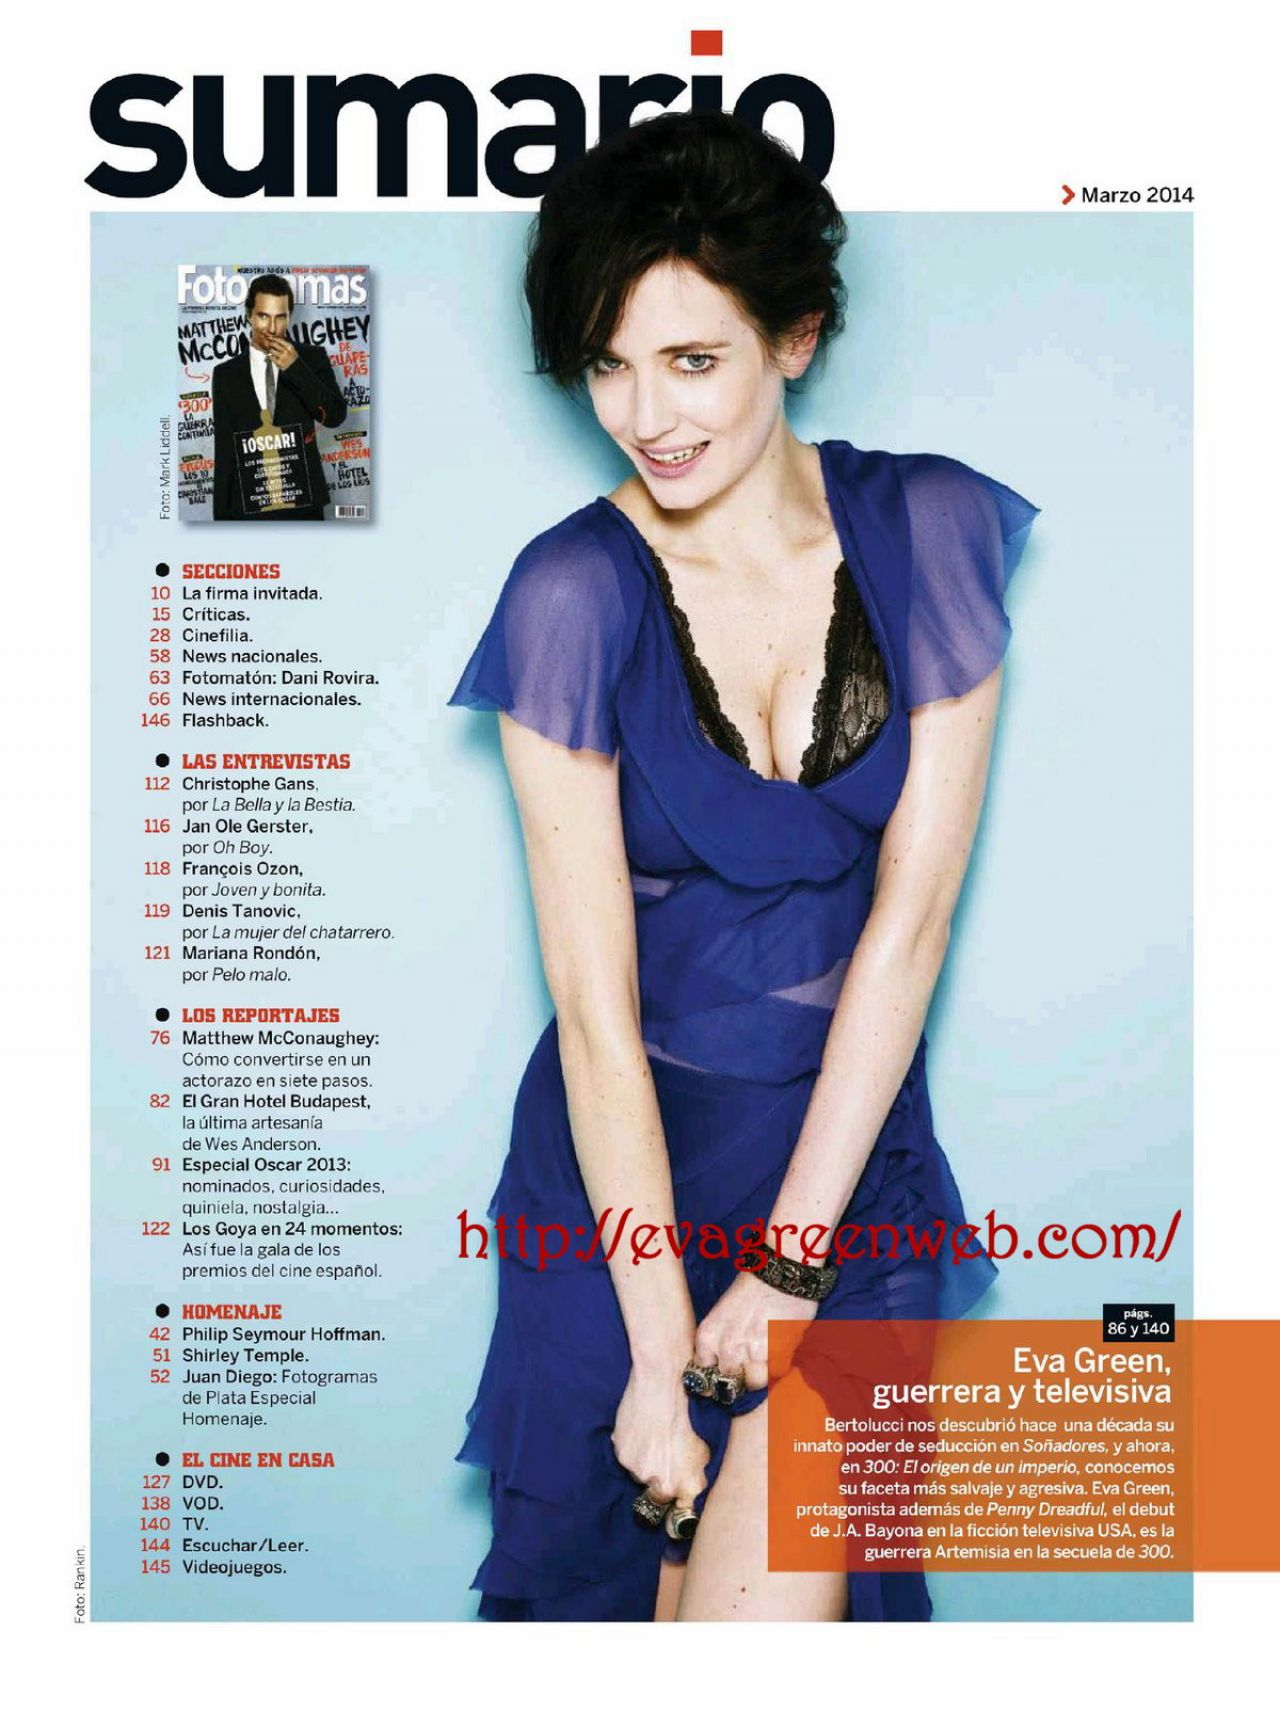 Eva Green - Fotogramas Magazine (Spain) - March 2014 Issue